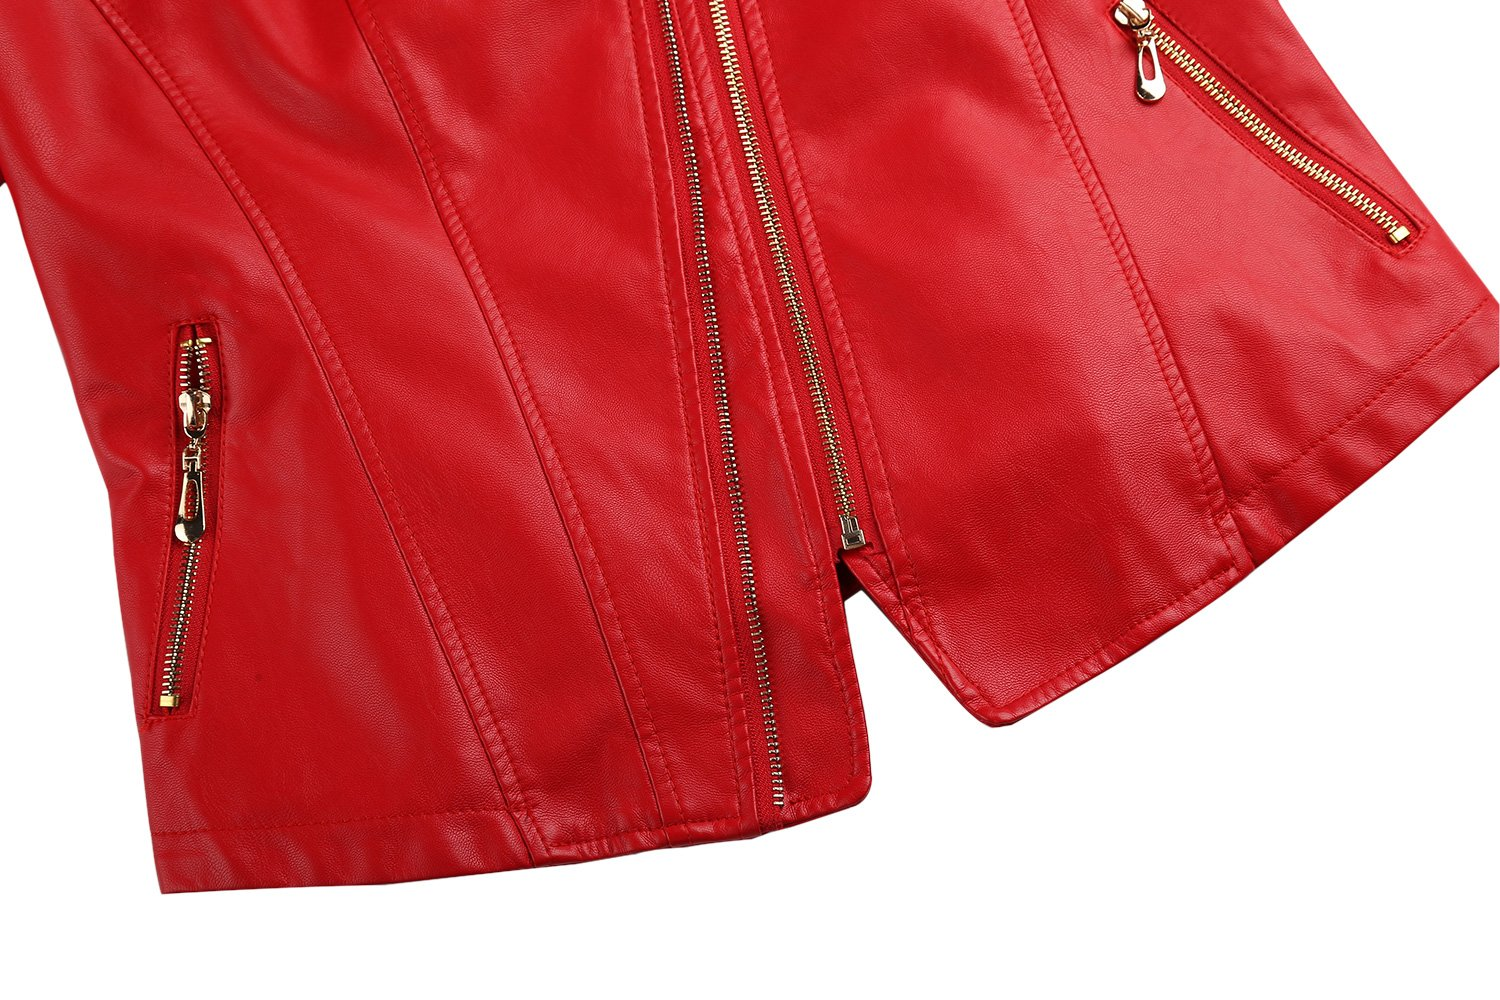 Tanming Women's Slim Zipper Color Faux Leather Jacket Red (Large, Red) by Tanming (Image #6)